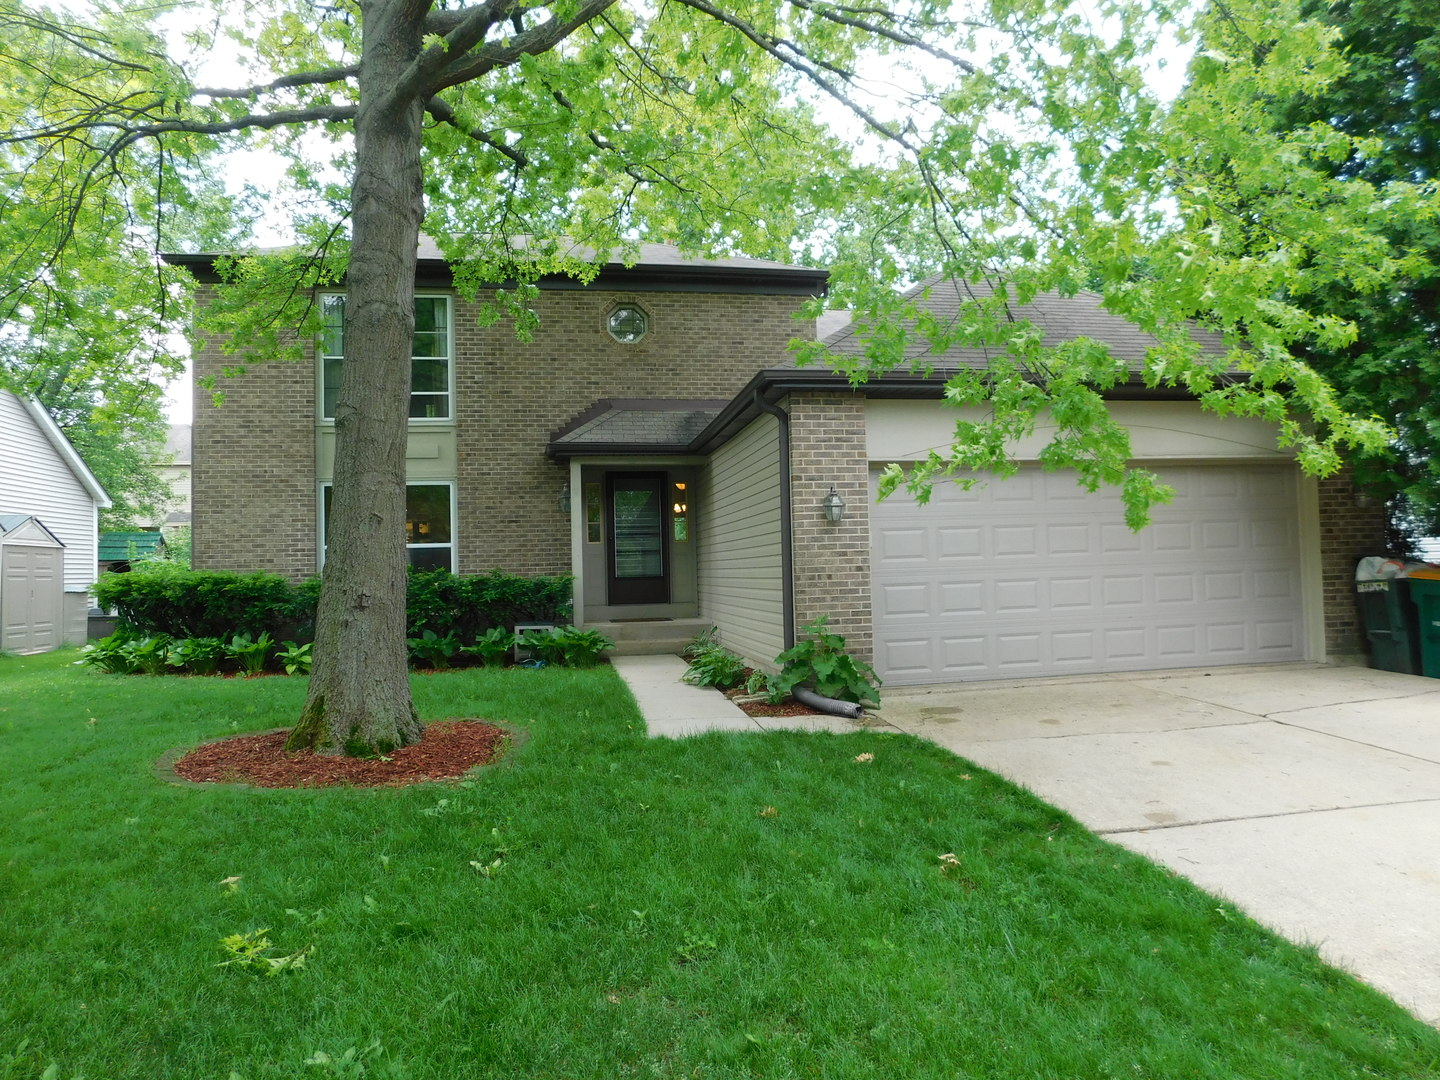 GARDENIA Lane, BUFFALO GROVE, IL 60089